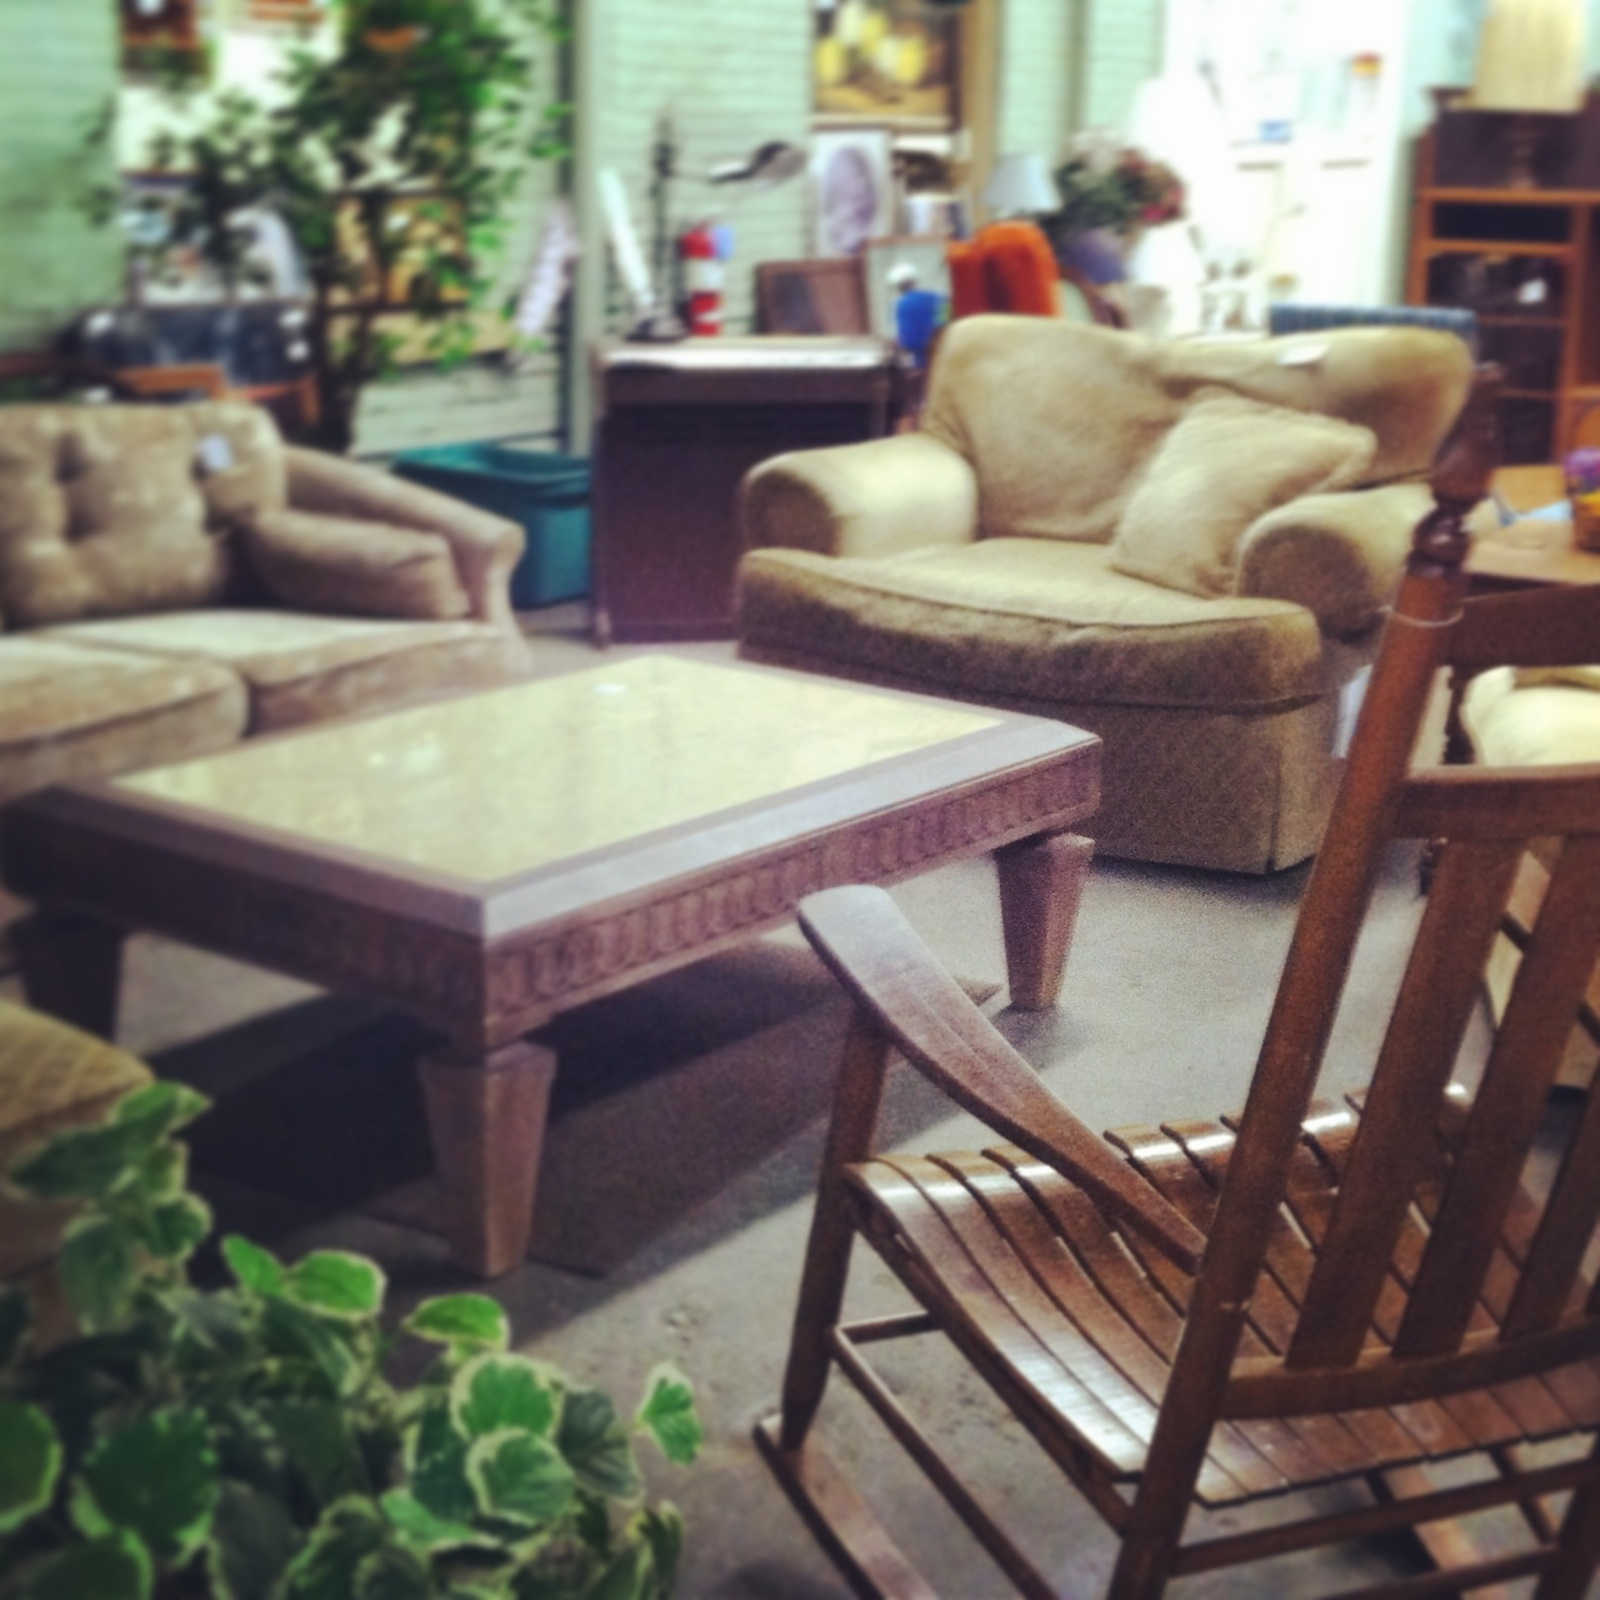 Depotquot Thrift Store amp Furniture Showrooms Community Helping Hands